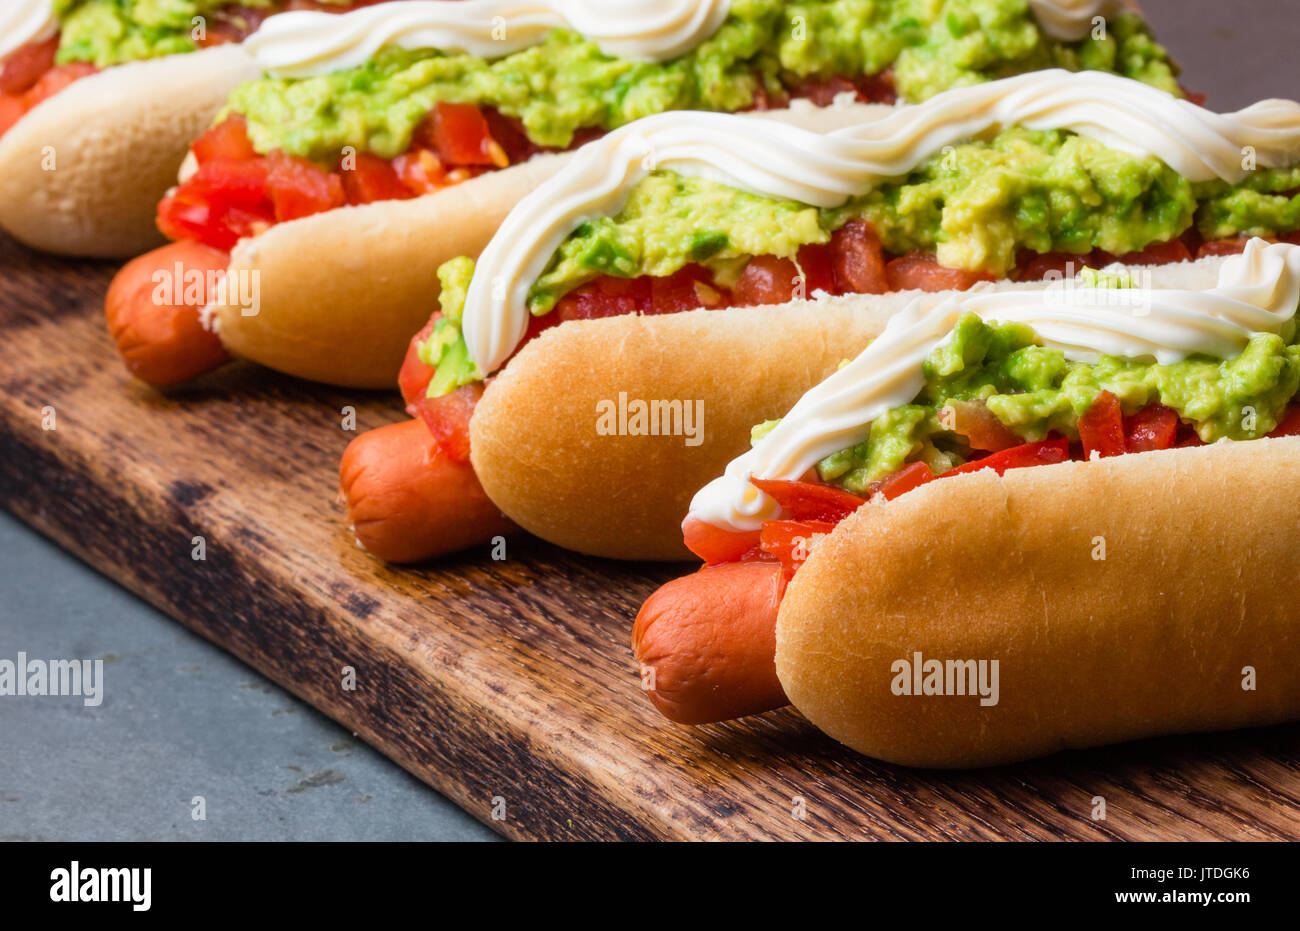 Chilean Completo Italiano. Hot dog sandwiches with tomato, avocado and mayonnaise on wooden board. closeup. - Stock Image